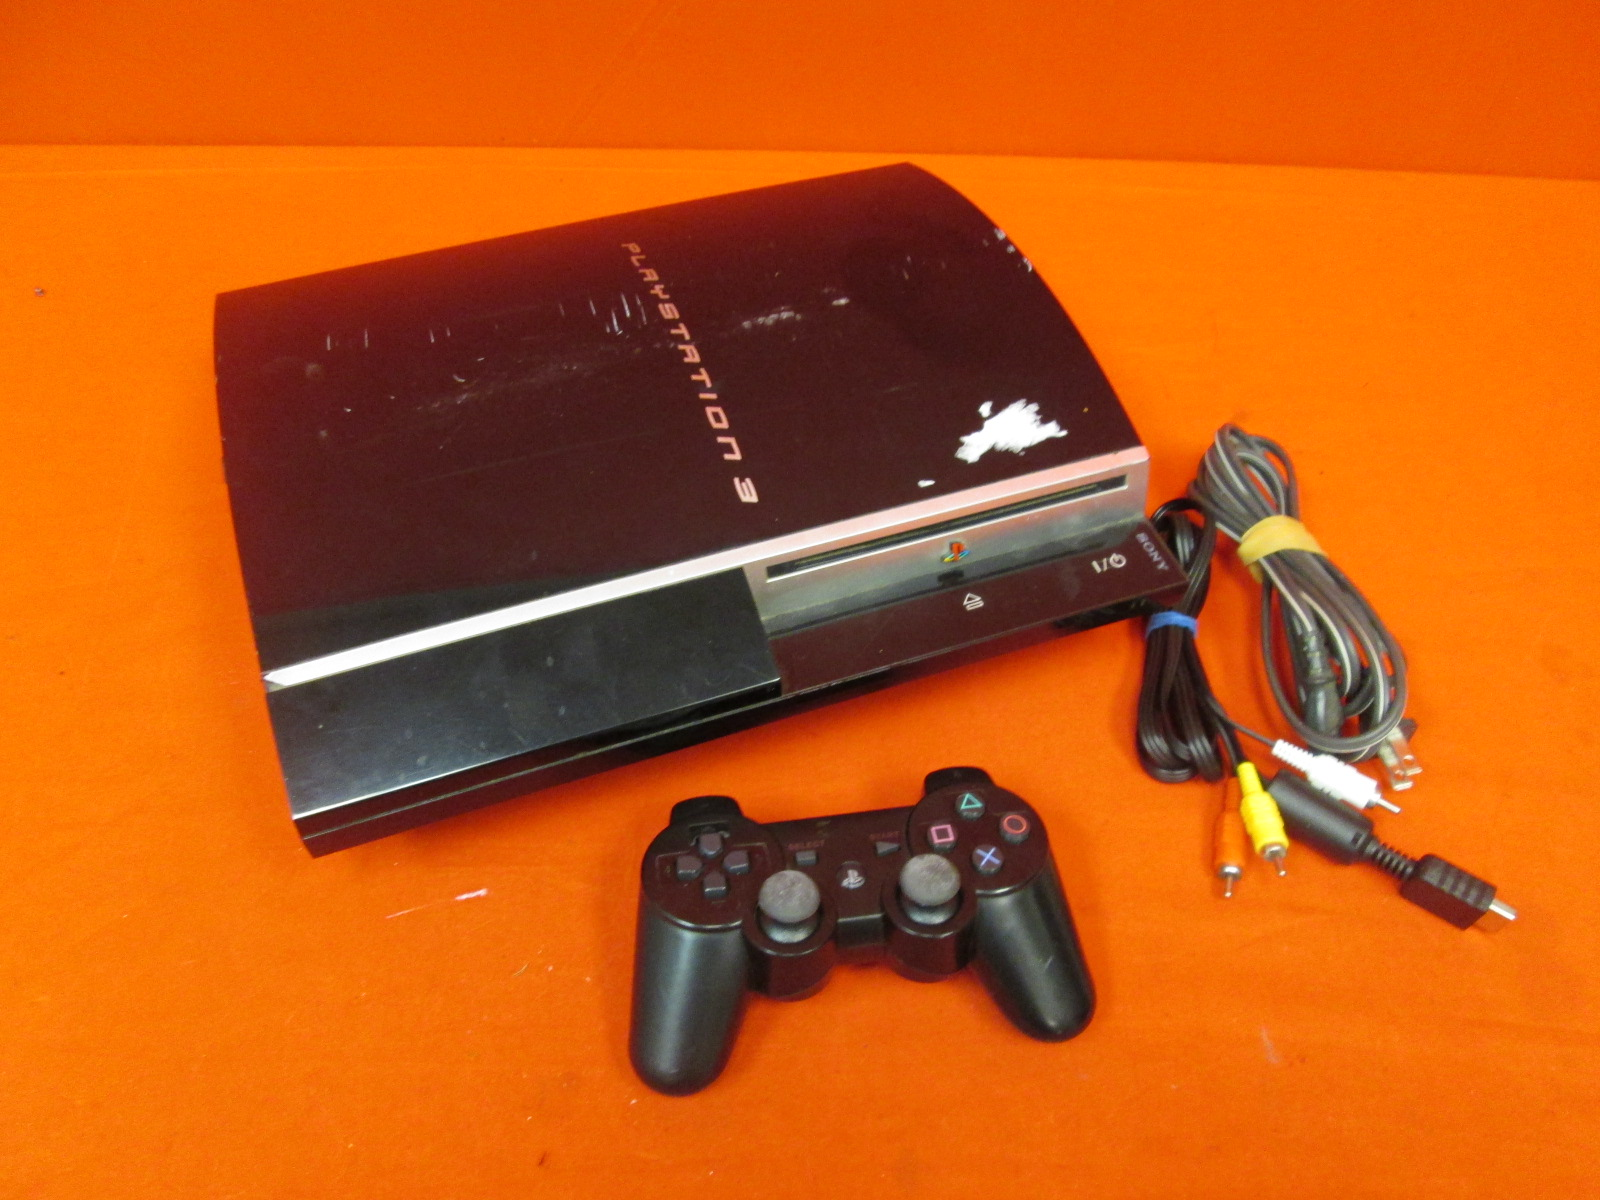 Image 0 of PlayStation 3 160GB CECHL01 System Video Game Console With Controller